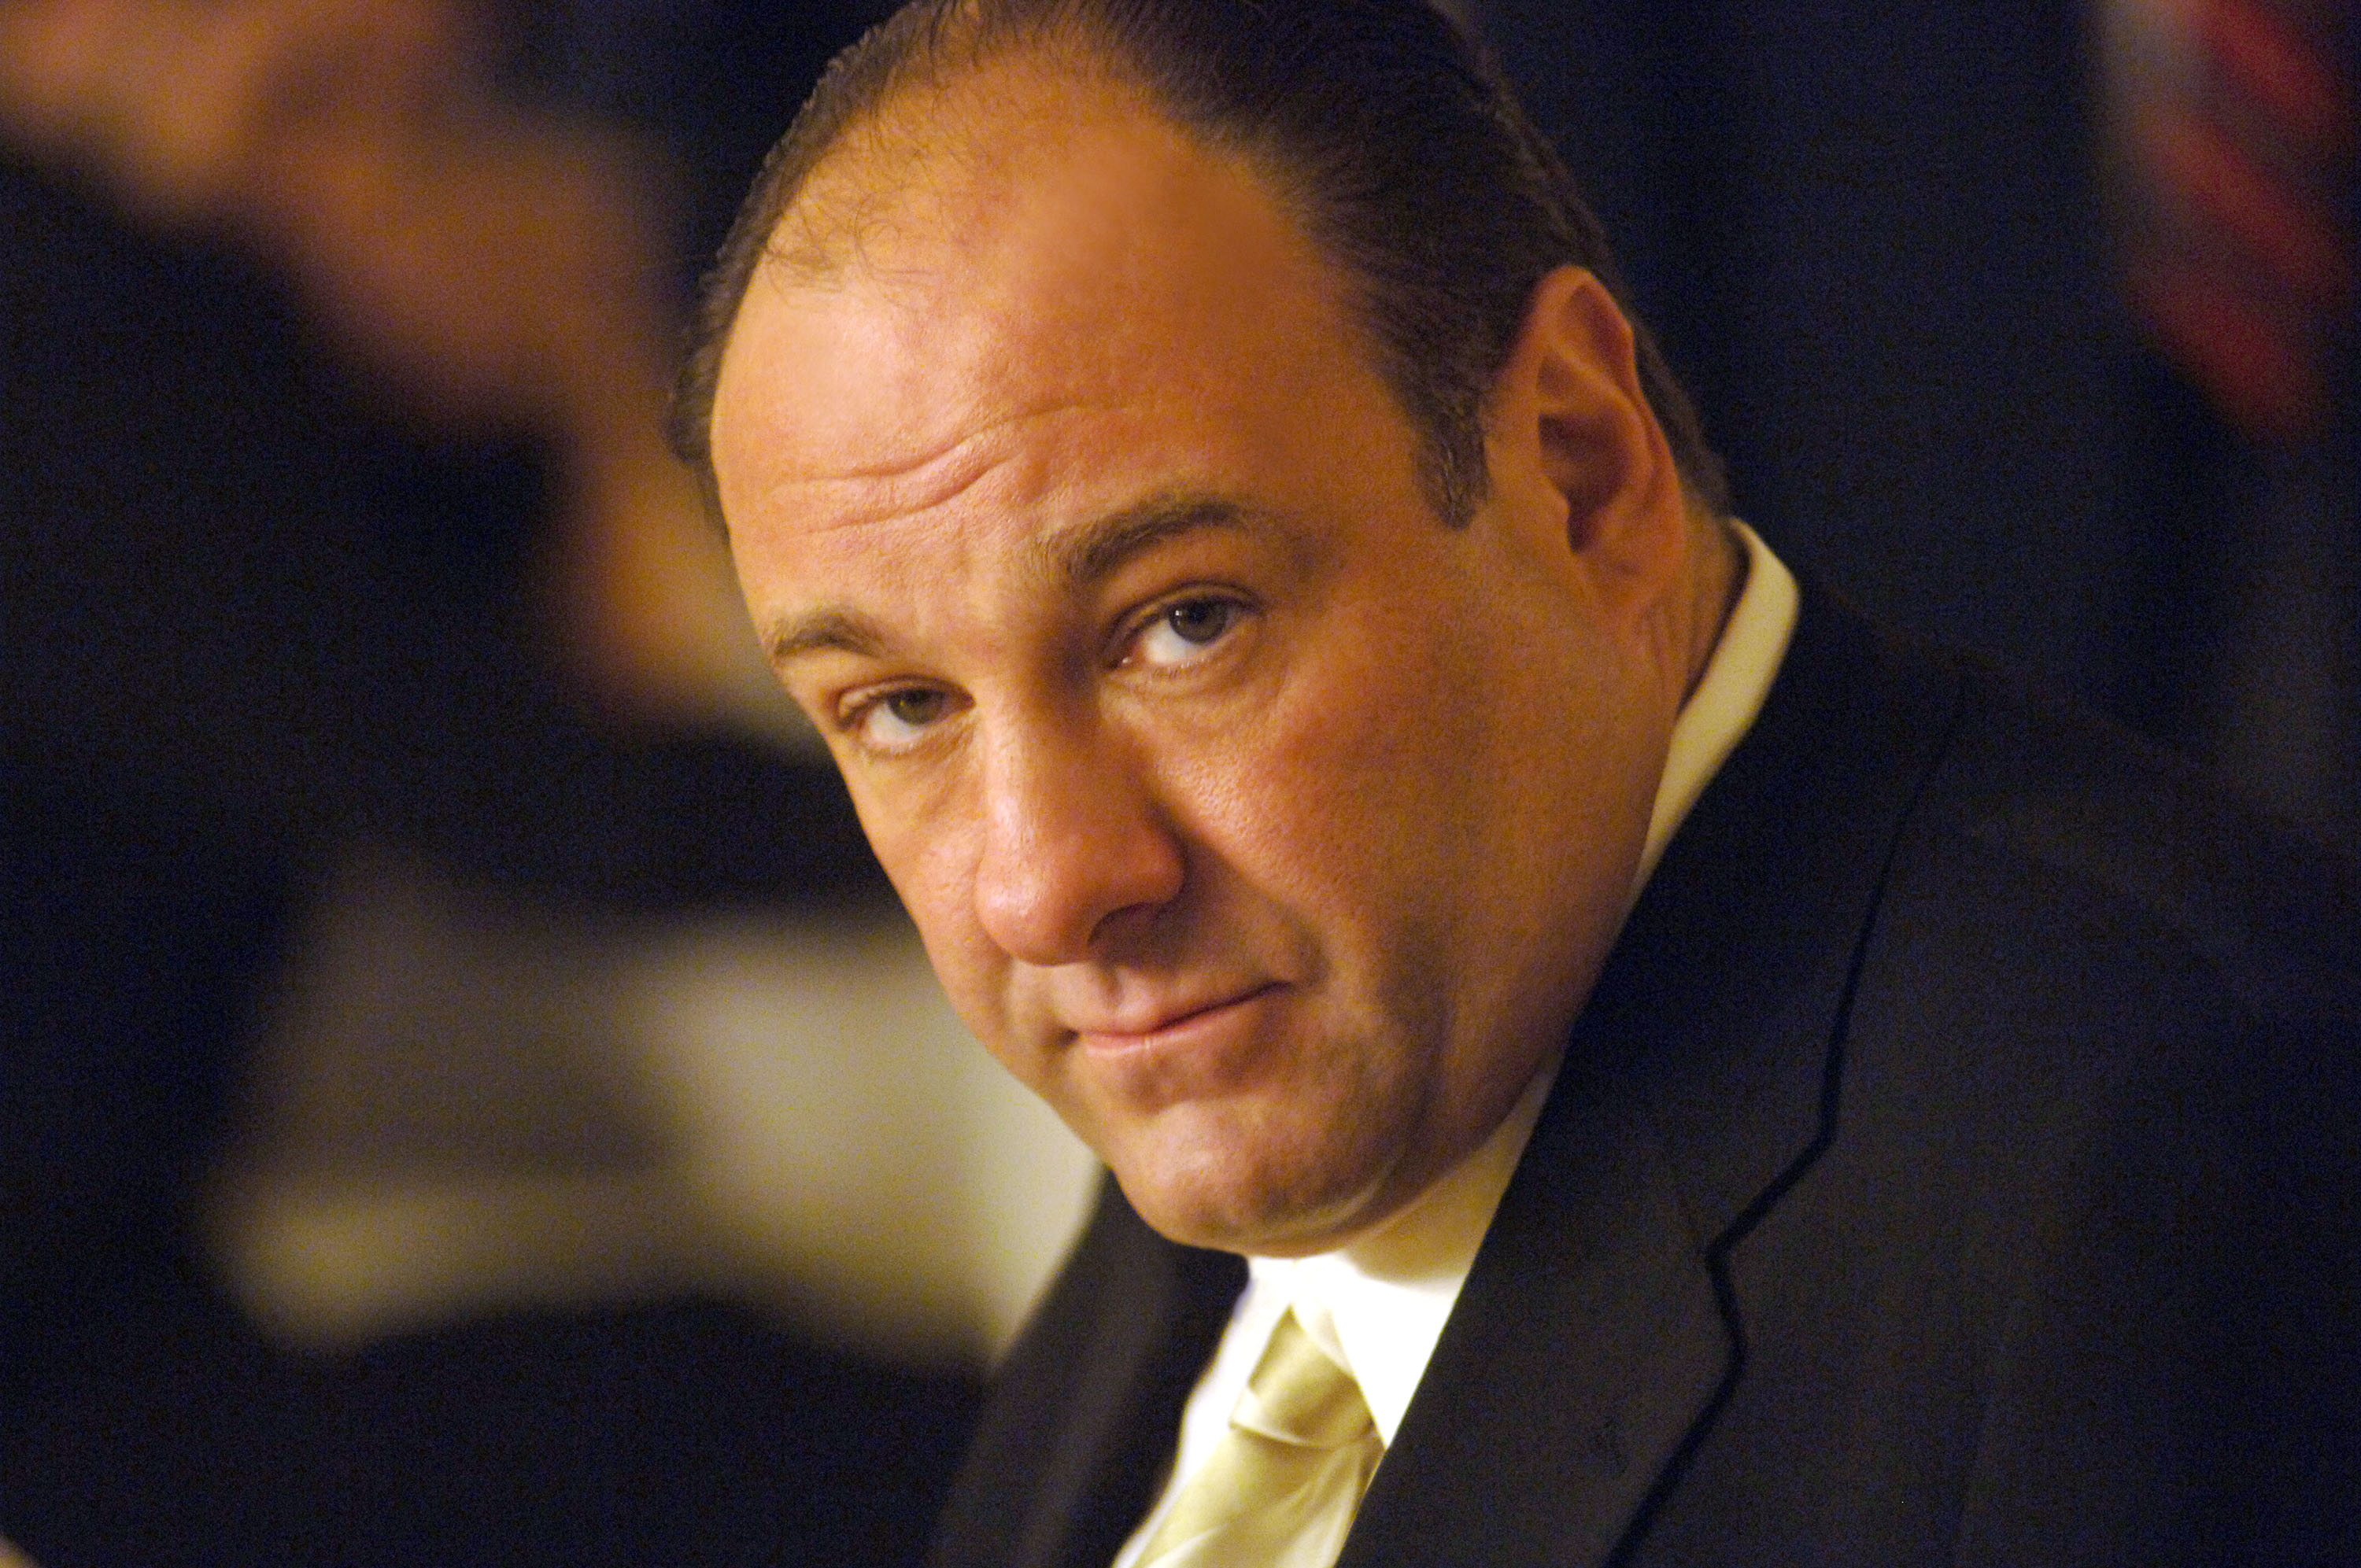 James Gandolfini Full hd wallpapers